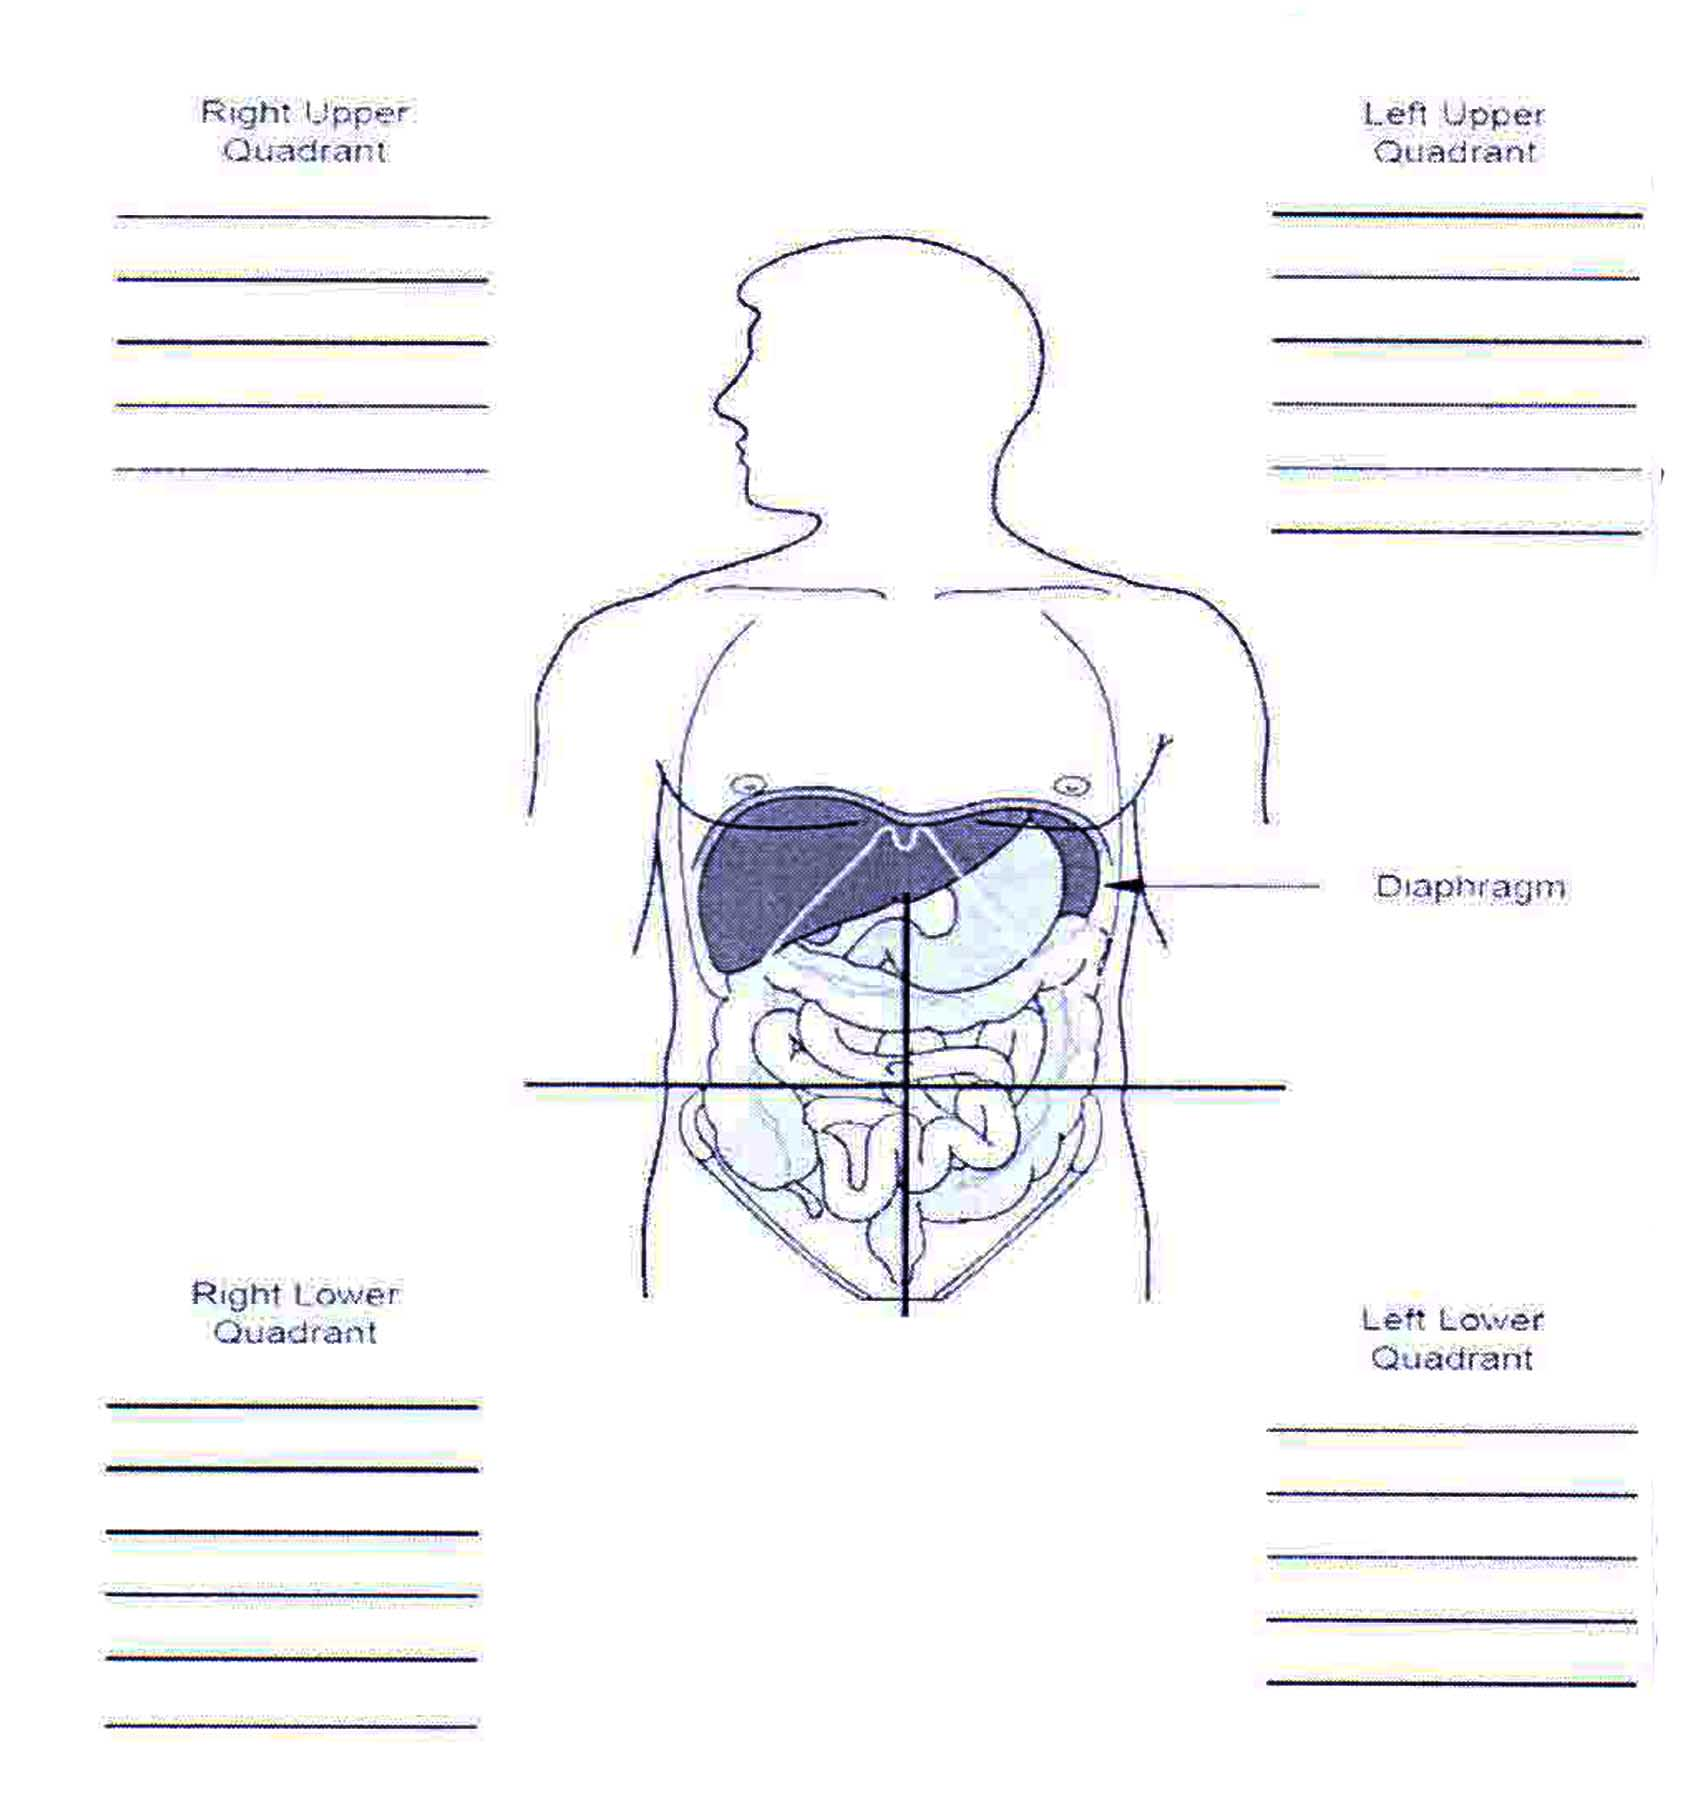 abdominal quadrants and organs of Human Body Sketch